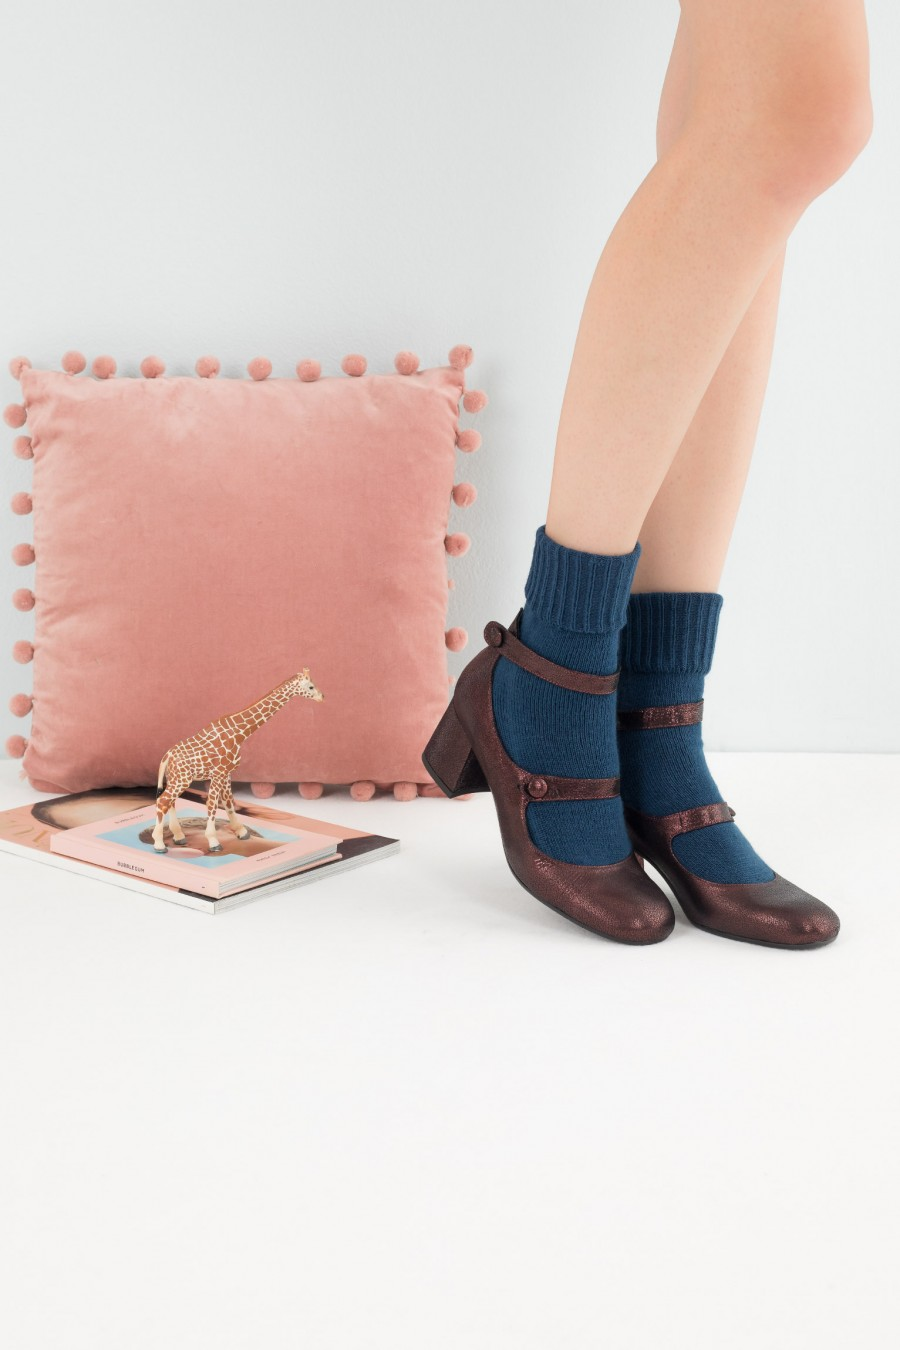 Lazzari autumnal Mary Jane shoes